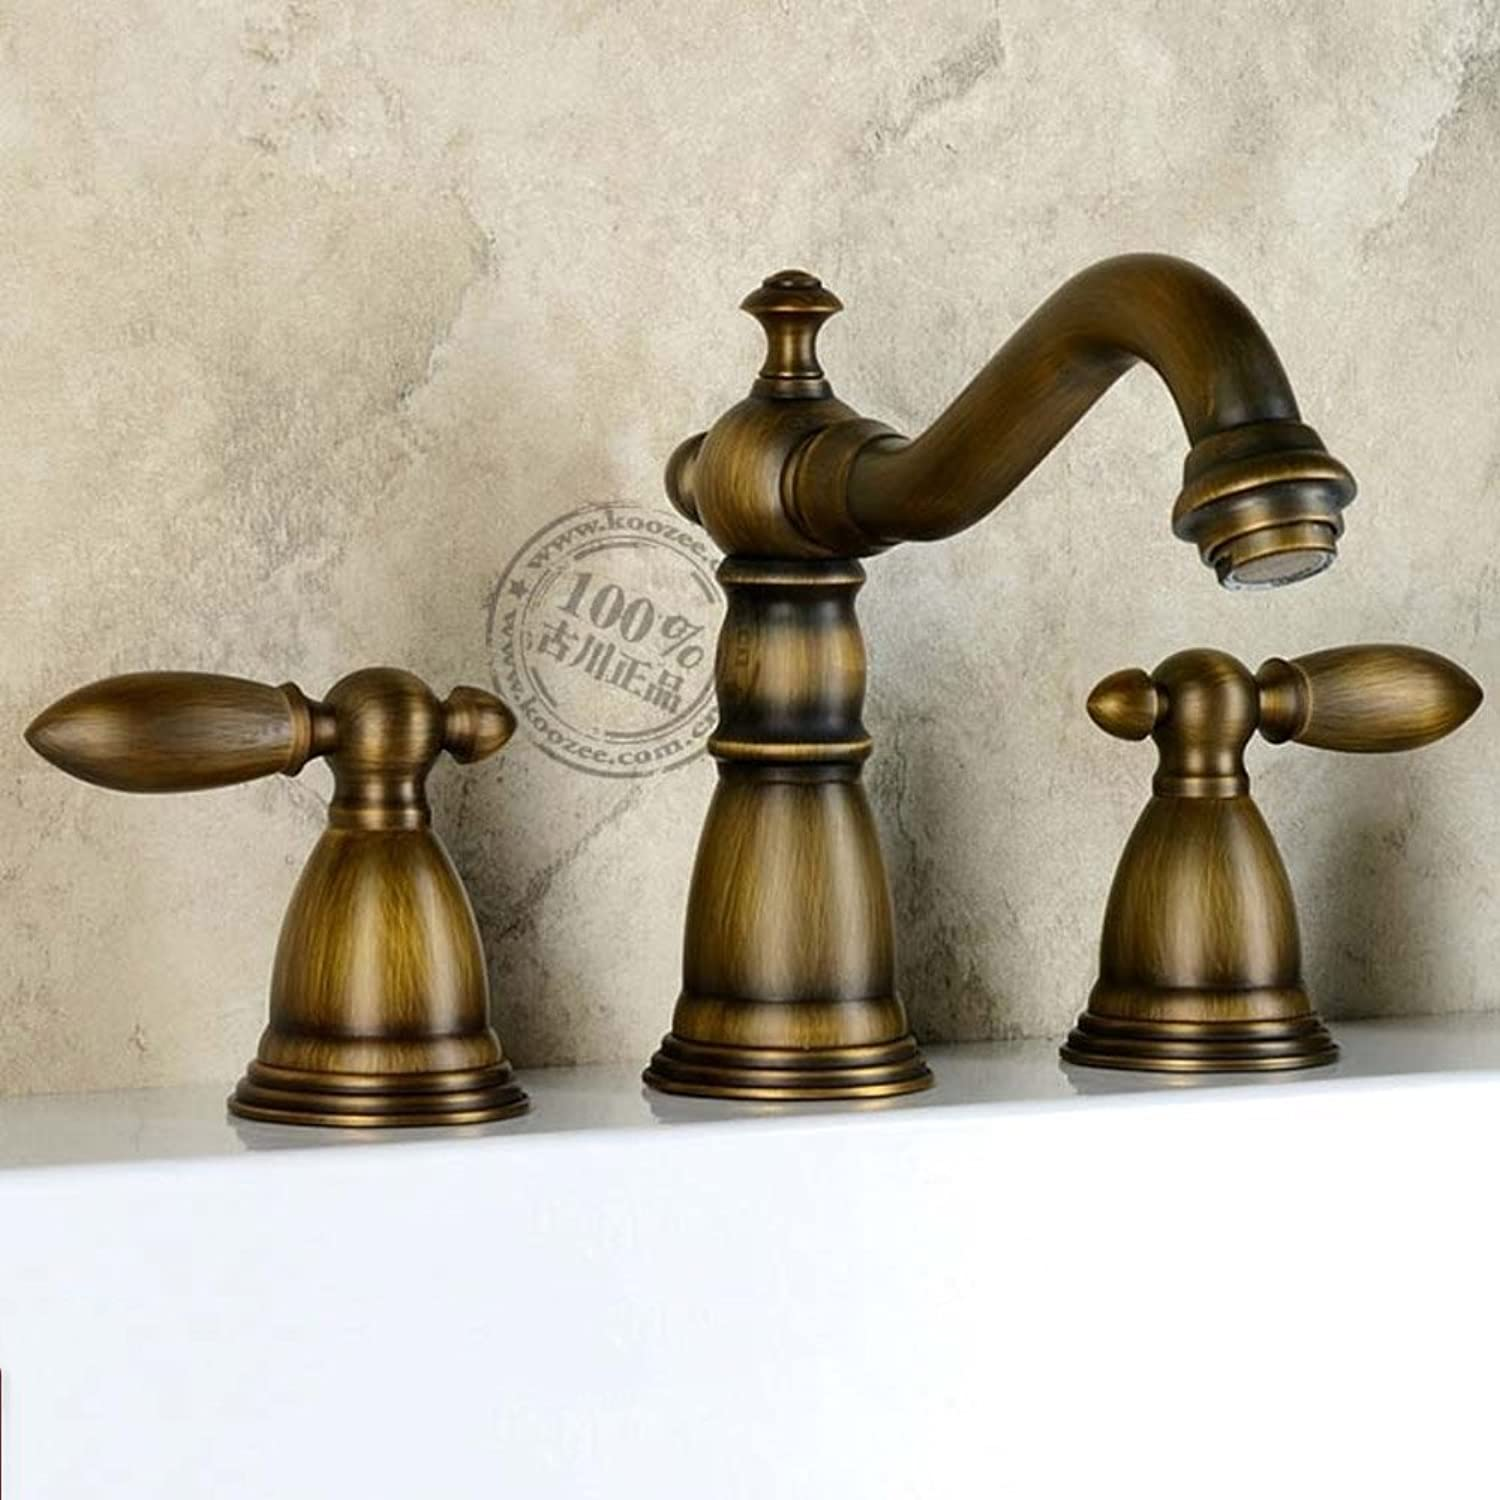 Bathroom sink taps Retro pure copper continental double handles -A